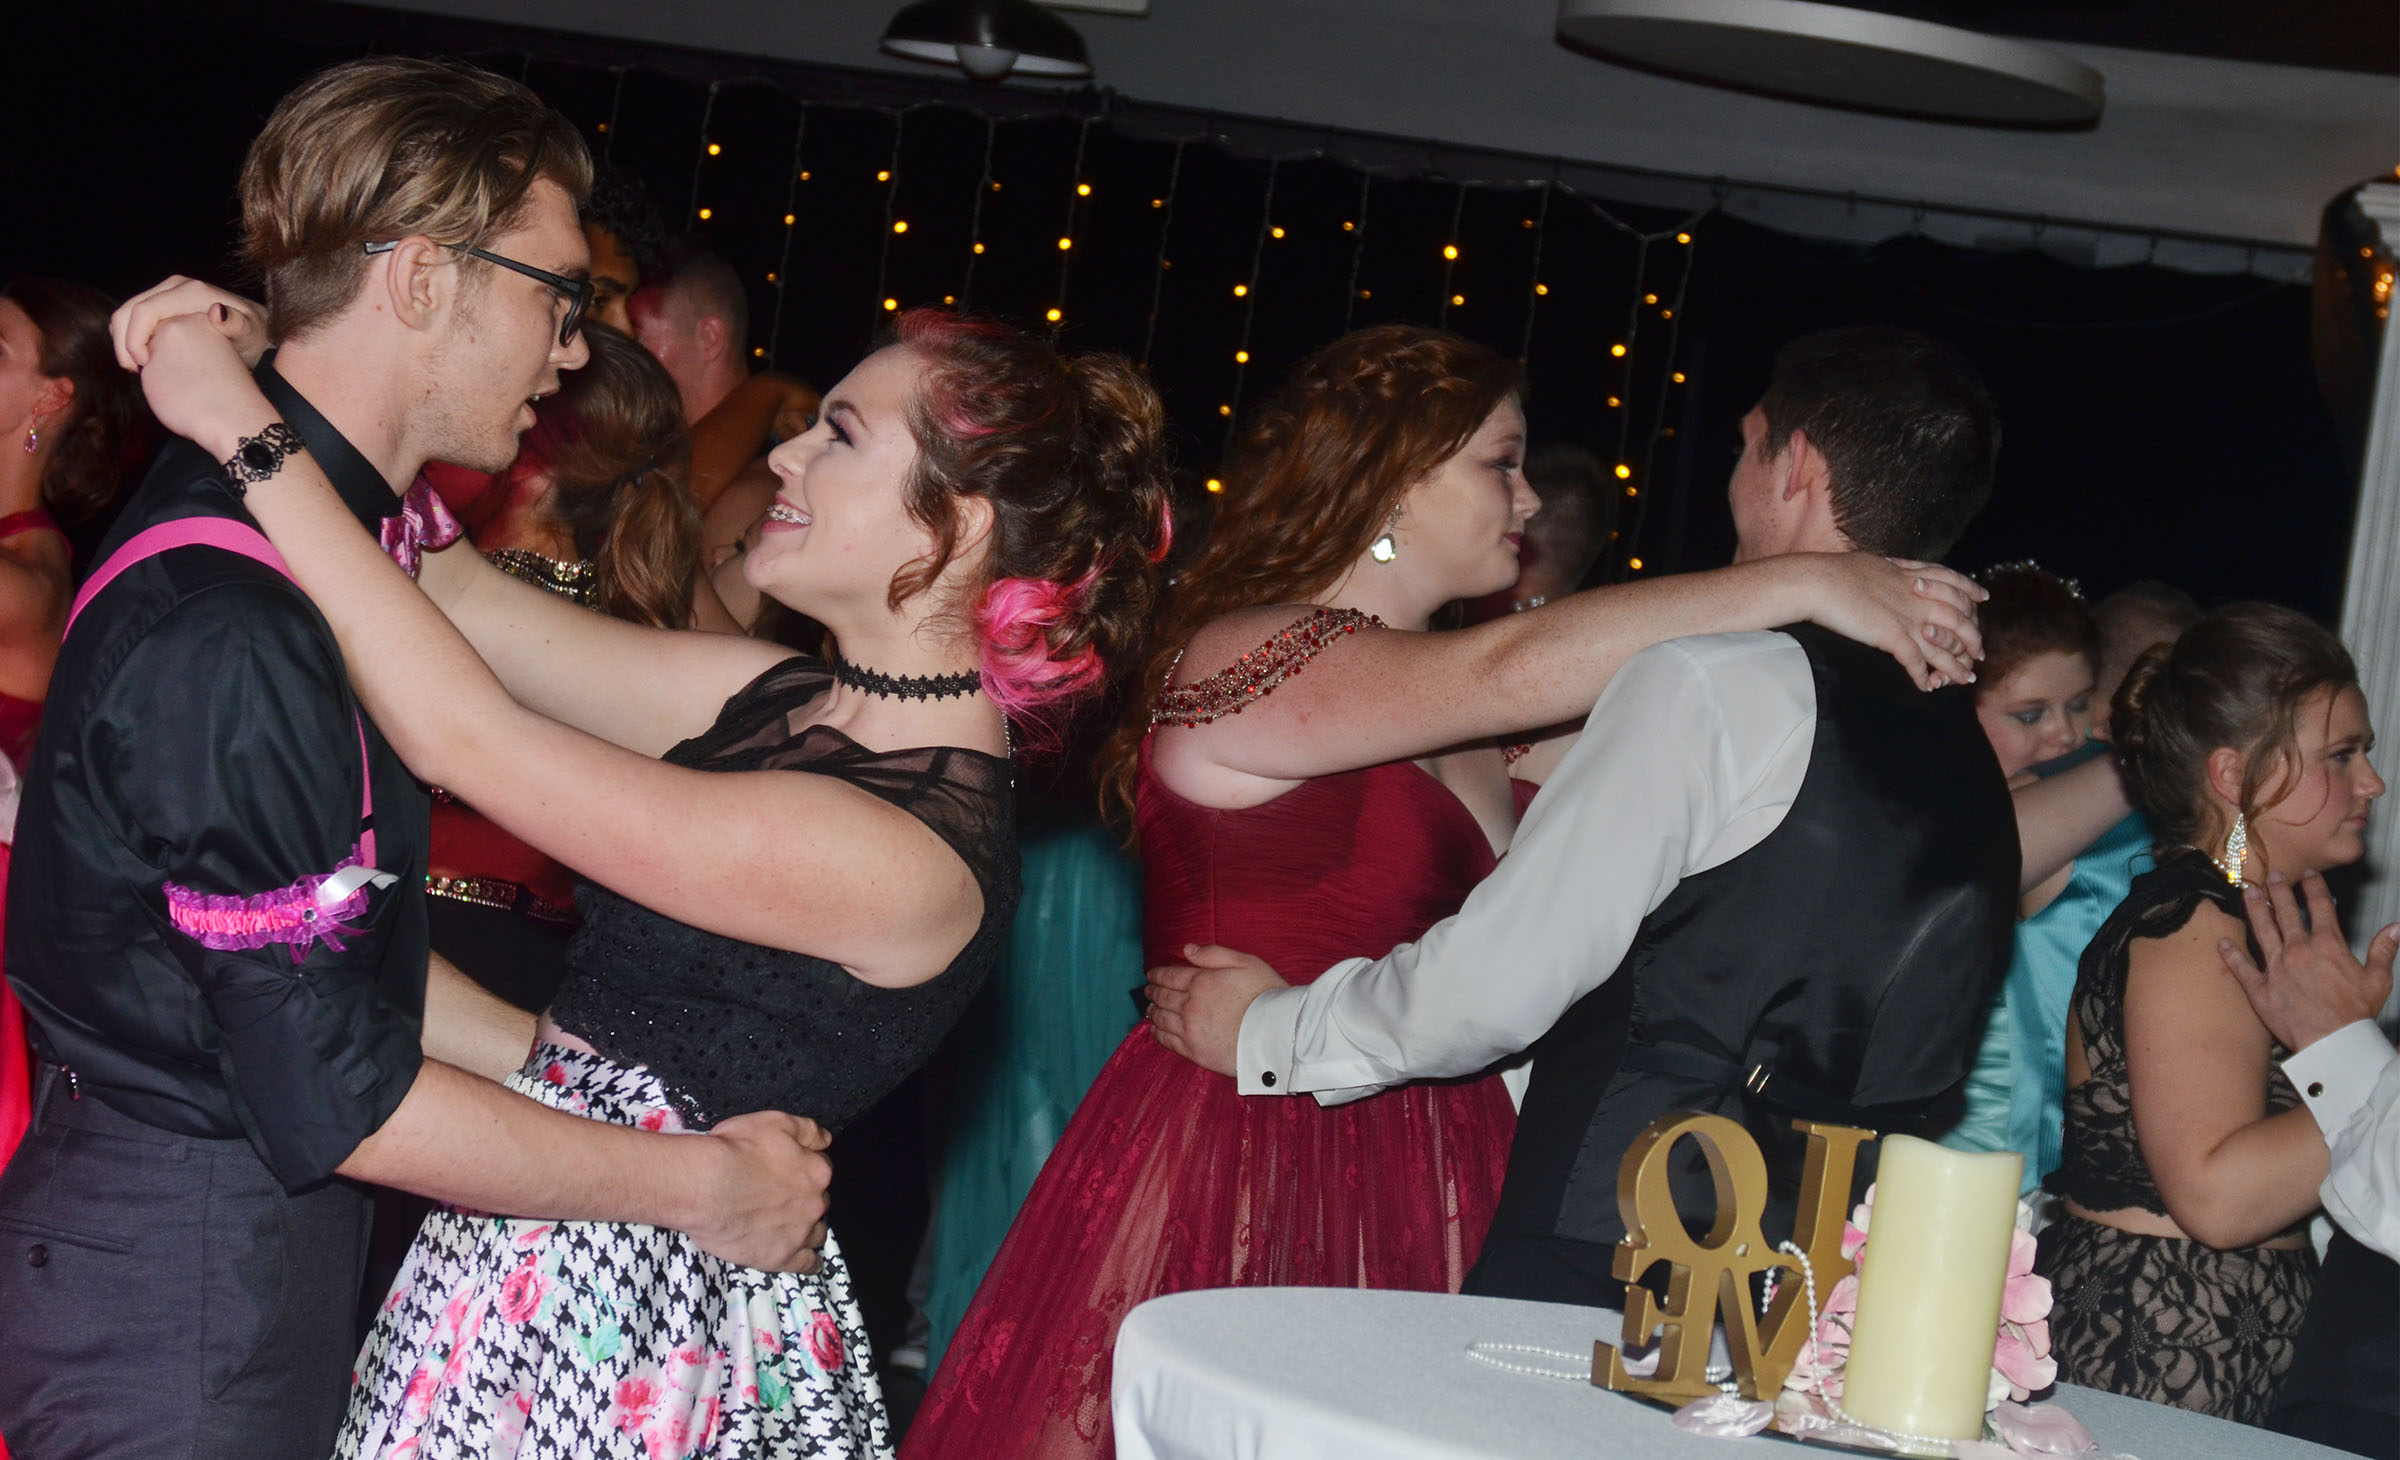 CHS junior Christian Berry and his date Jesslynne Mann and their classmates dance at prom.